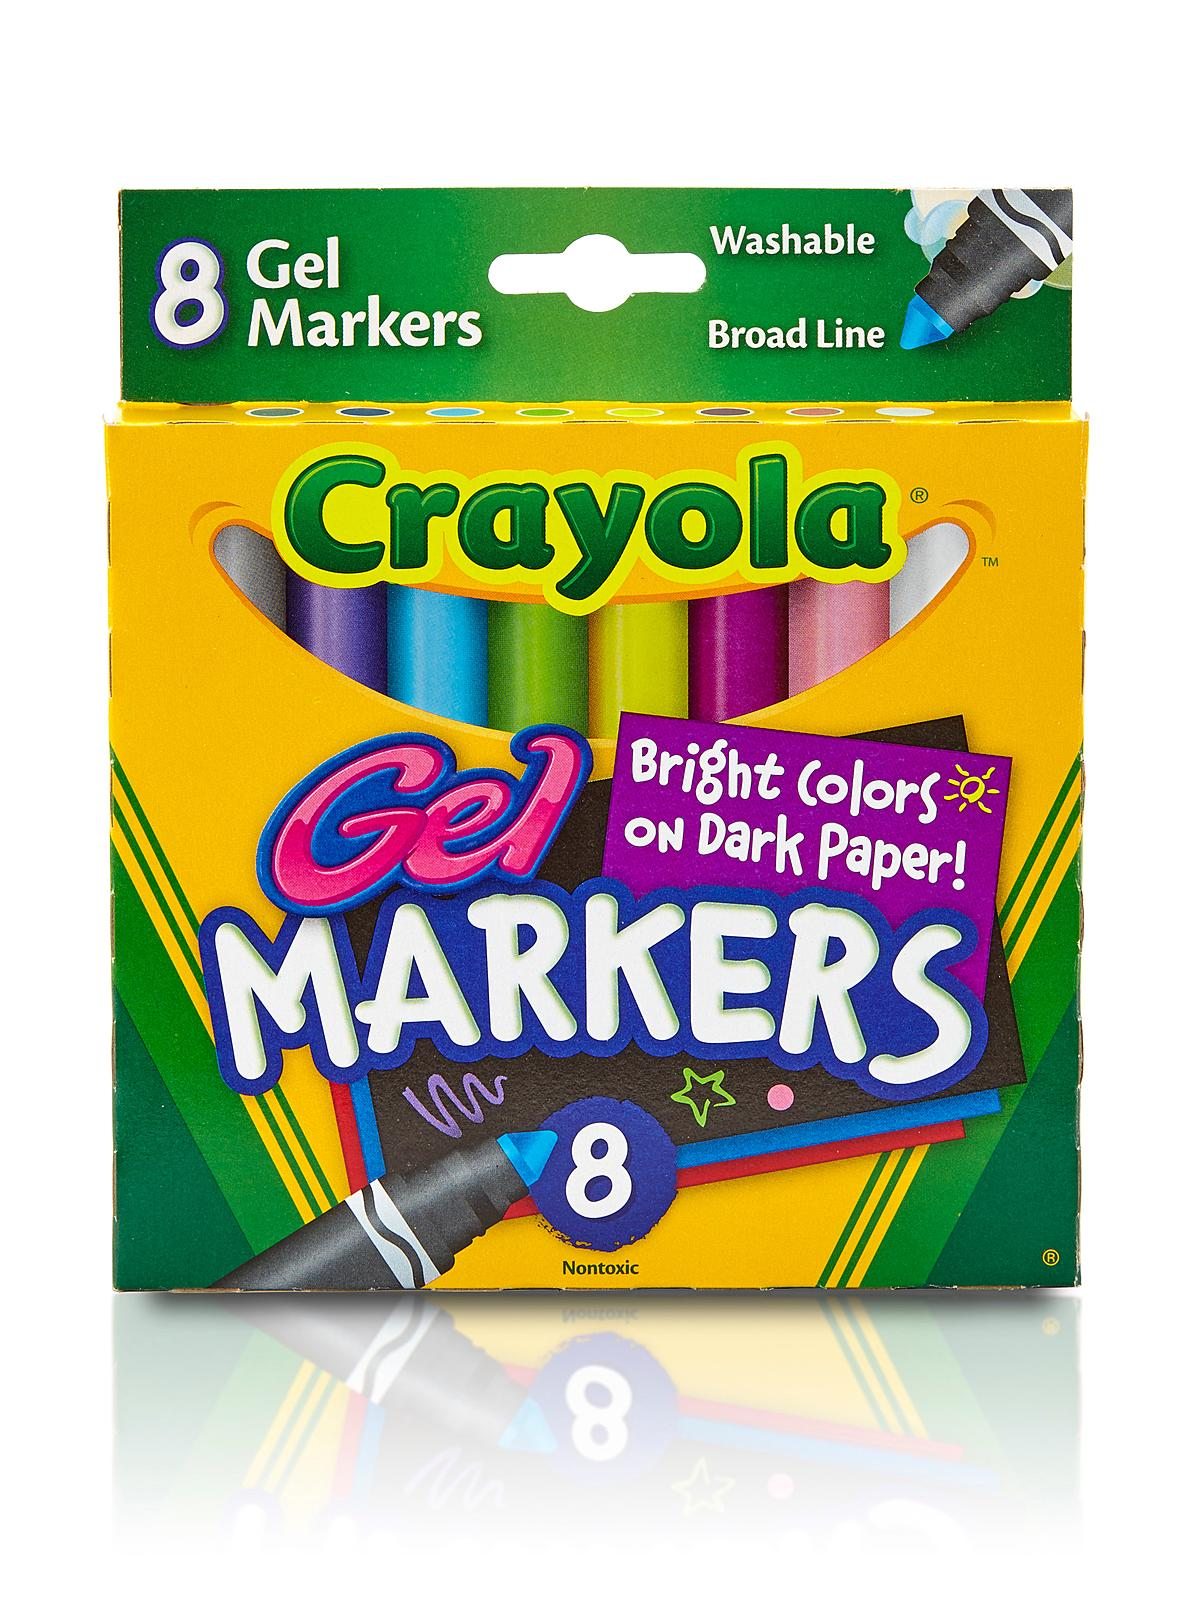 crayola fabric markers washing instructions